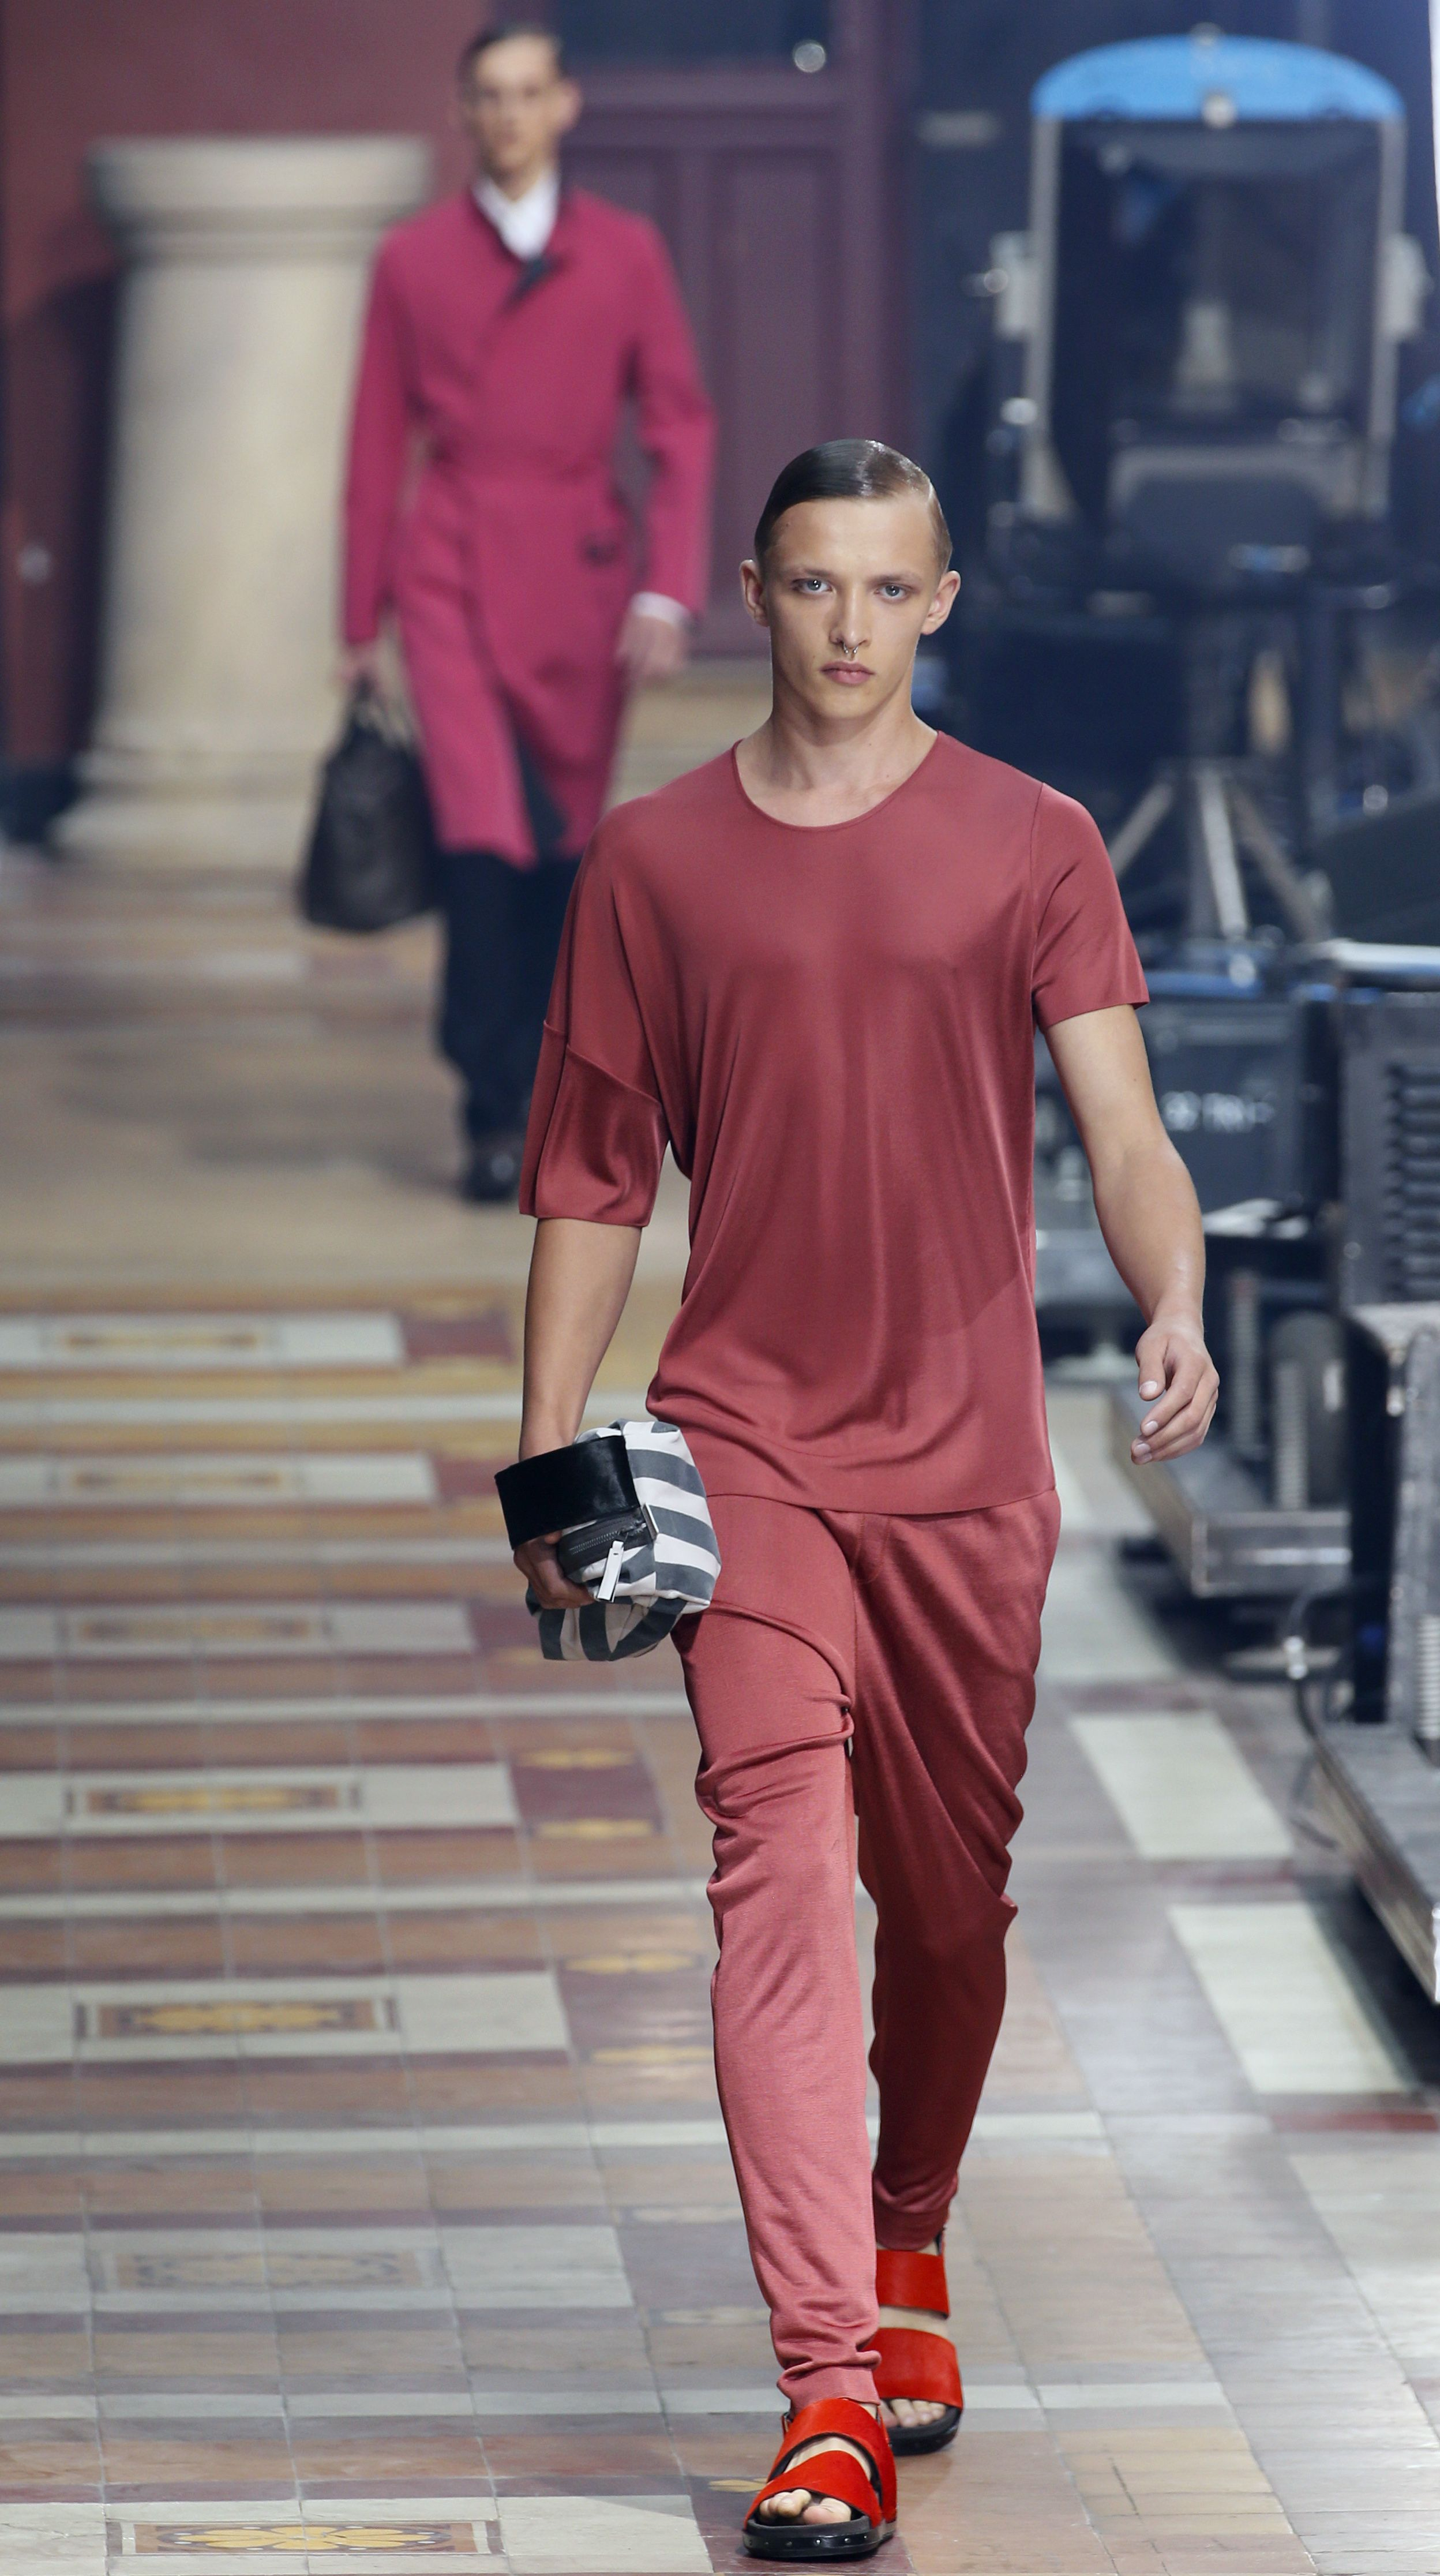 lanvin, sweatpants, style, fashion, lifestyle, menswear, spring 2014, paris fashion week